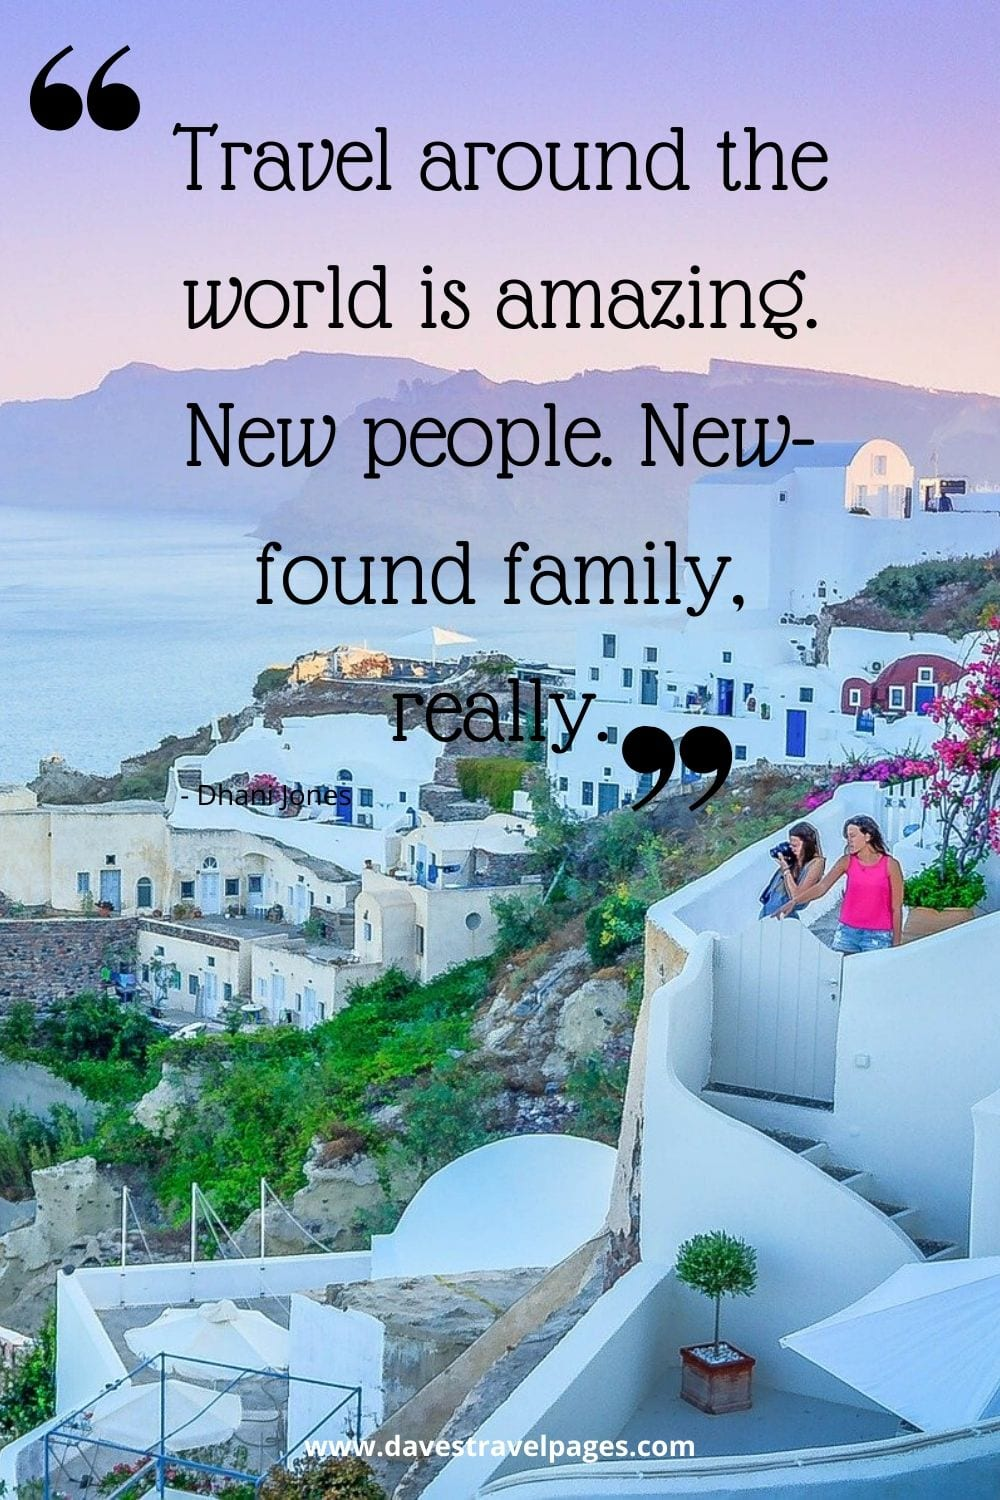 Travel around the world is amazing. New people. New-found family, really. Dhani Jones